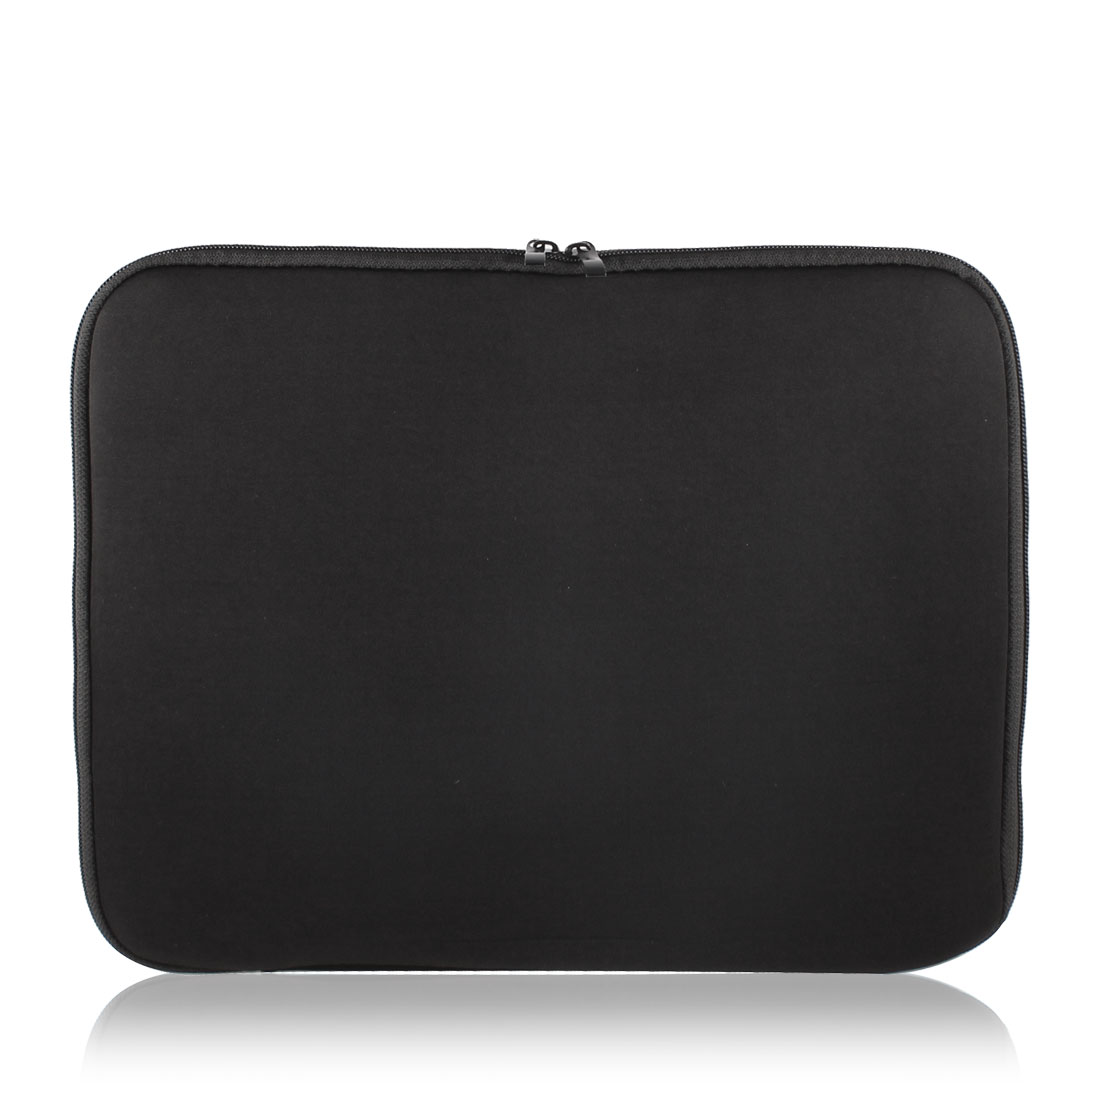 "14"" Notebook Laptop Sleeve Carry Case Bag Pouch Black"